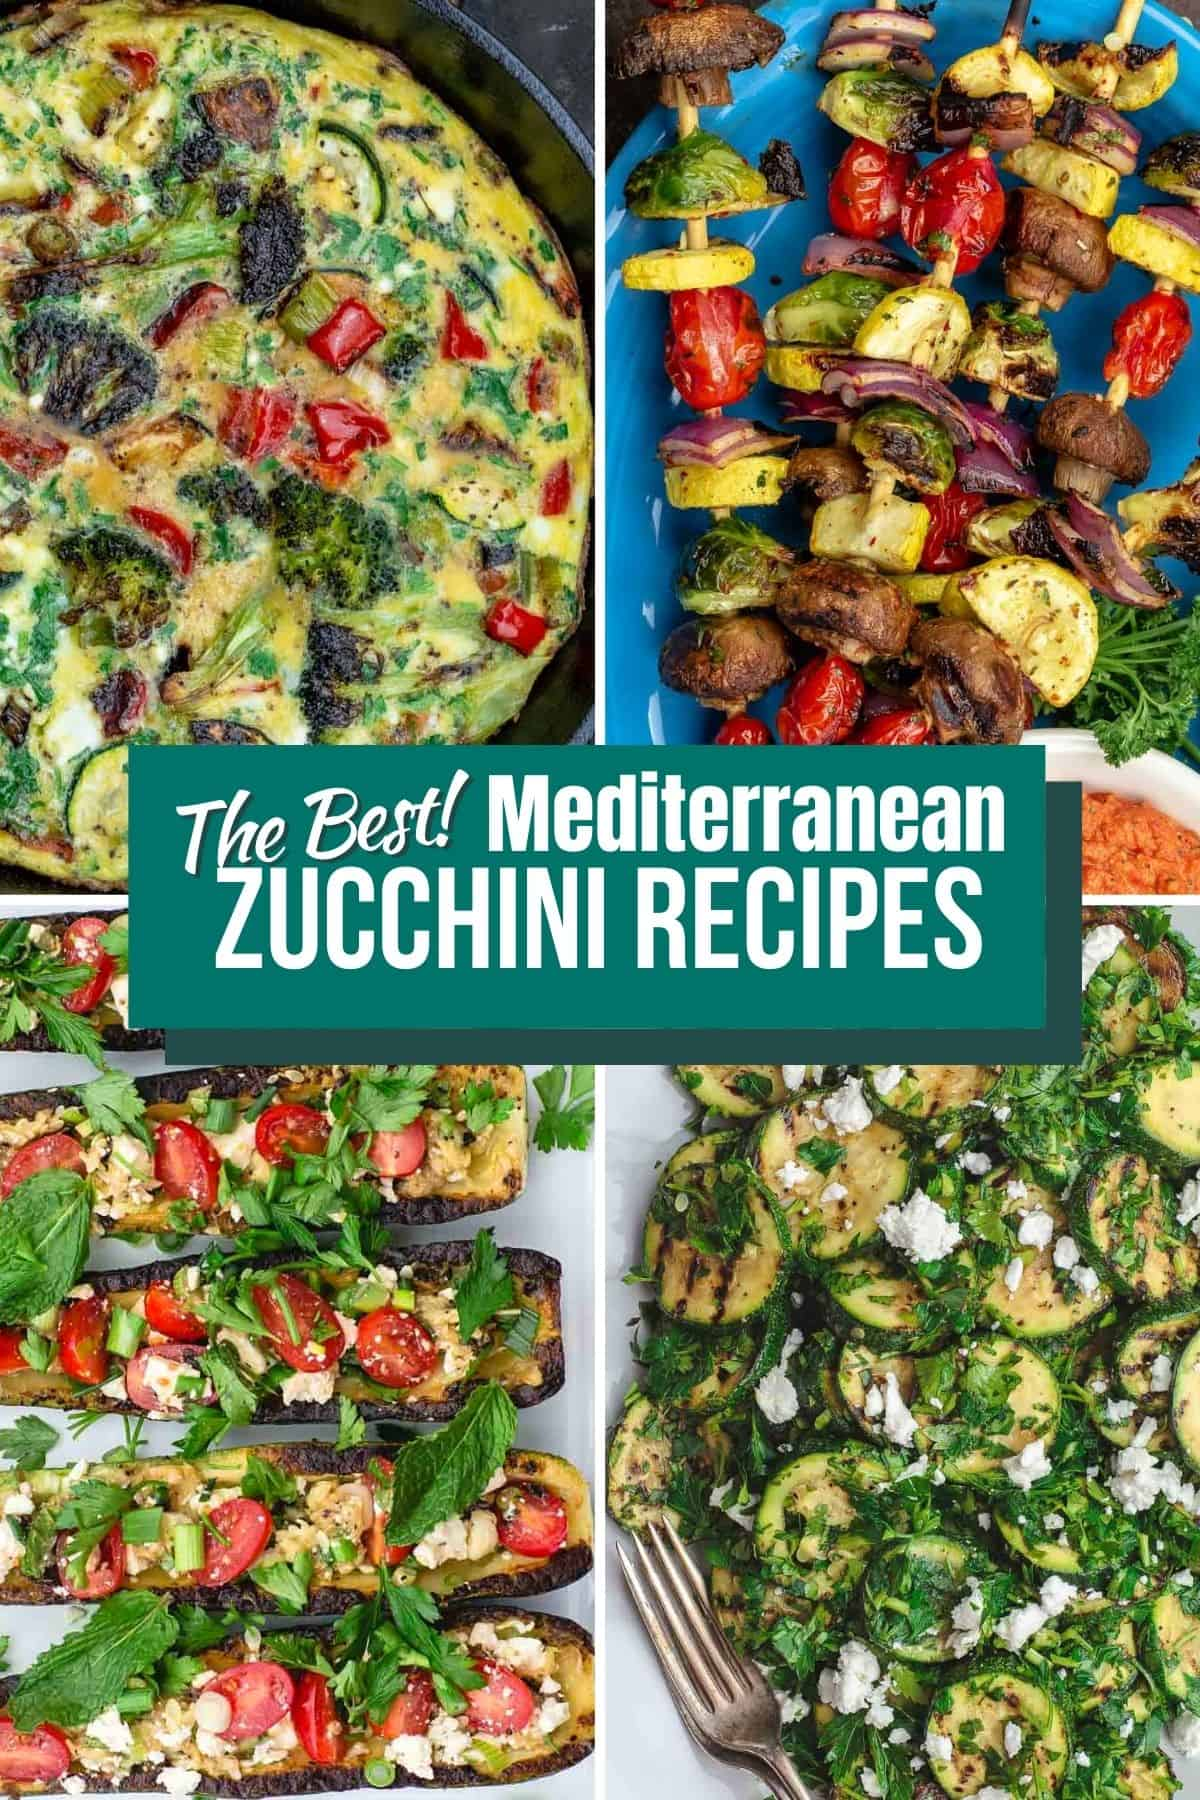 A selection of zucchini recipe photos from The Mediterranean Dish